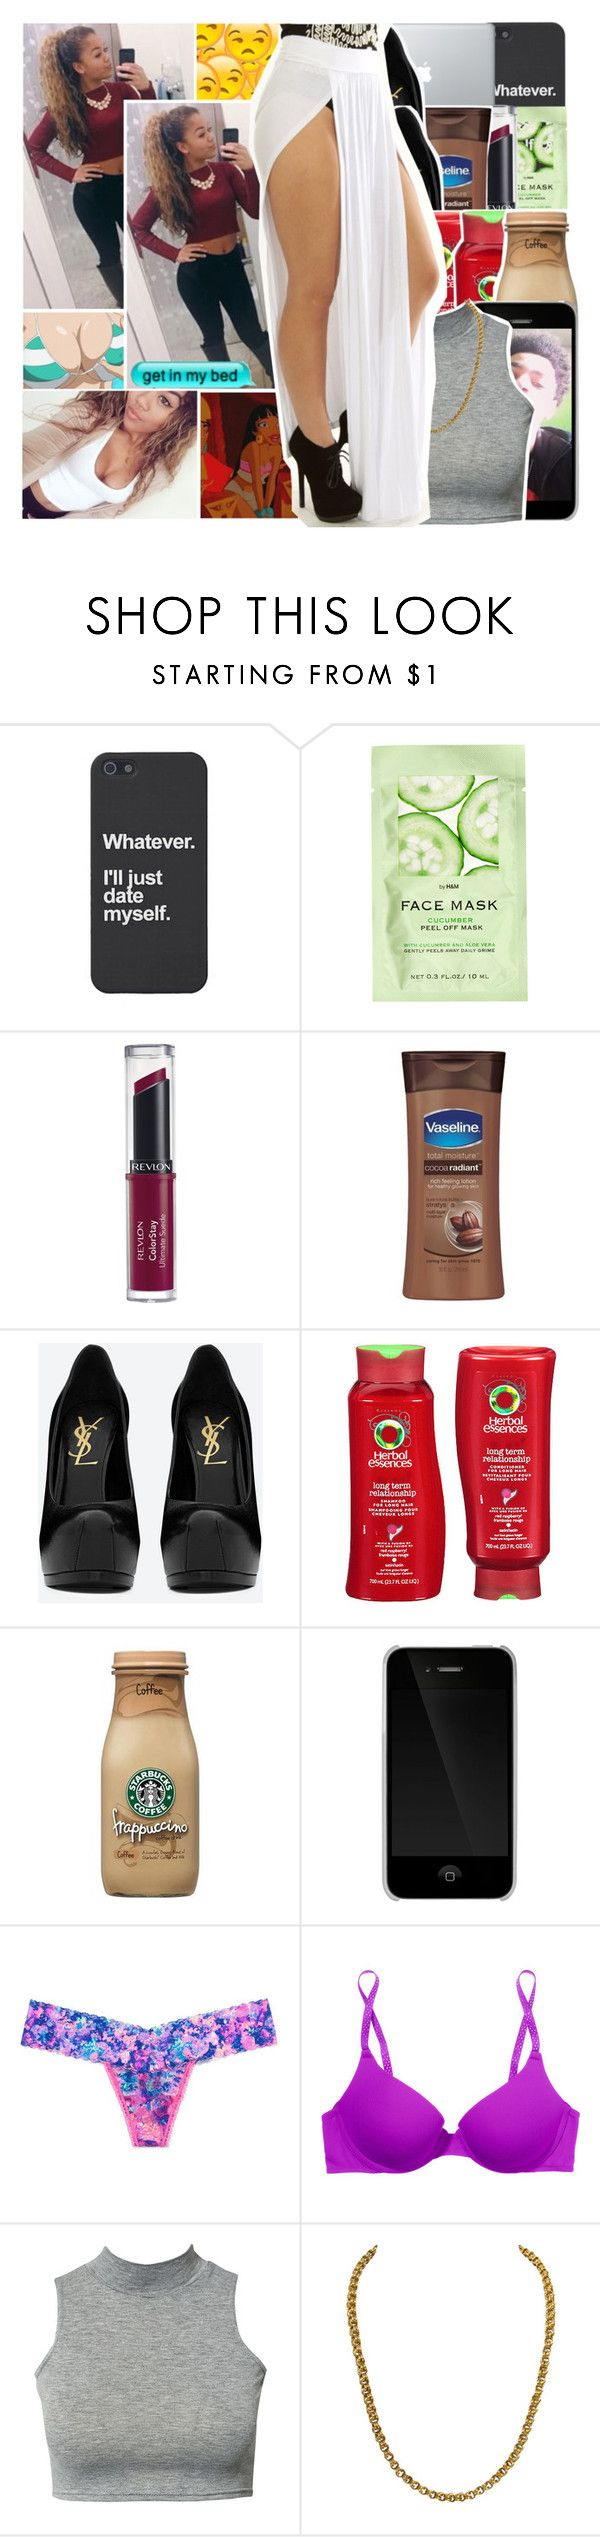 """Whatcha gonna do when i put that pretty thing on you ? ❤️"" by s-urfboard ❤ liked on Polyvore featuring H&M, Revlon, Yves Saint Laurent, Herbal Essences, Incase, Victoria's Secret PINK, Club L, princesscinderella, BabyGirlKai and LittleMissPrincess"